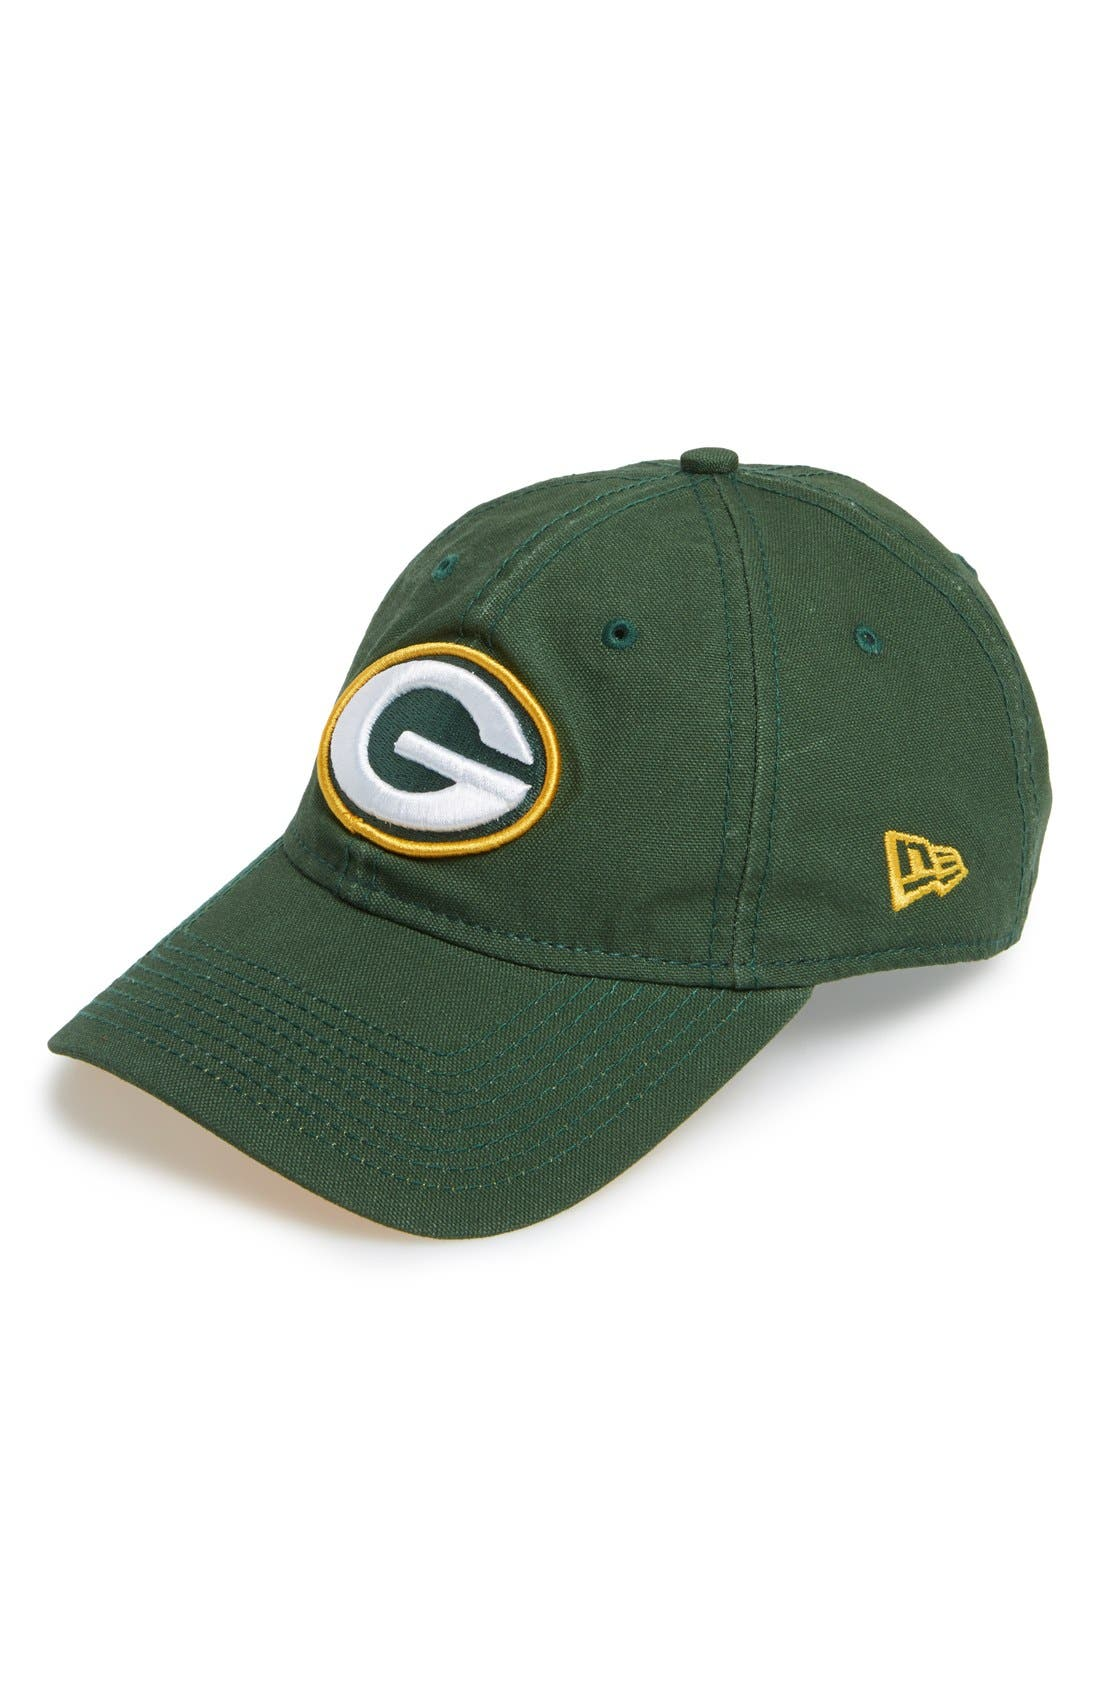 'Shoreline - Green Bay Packers' Cap,                             Main thumbnail 1, color,                             301